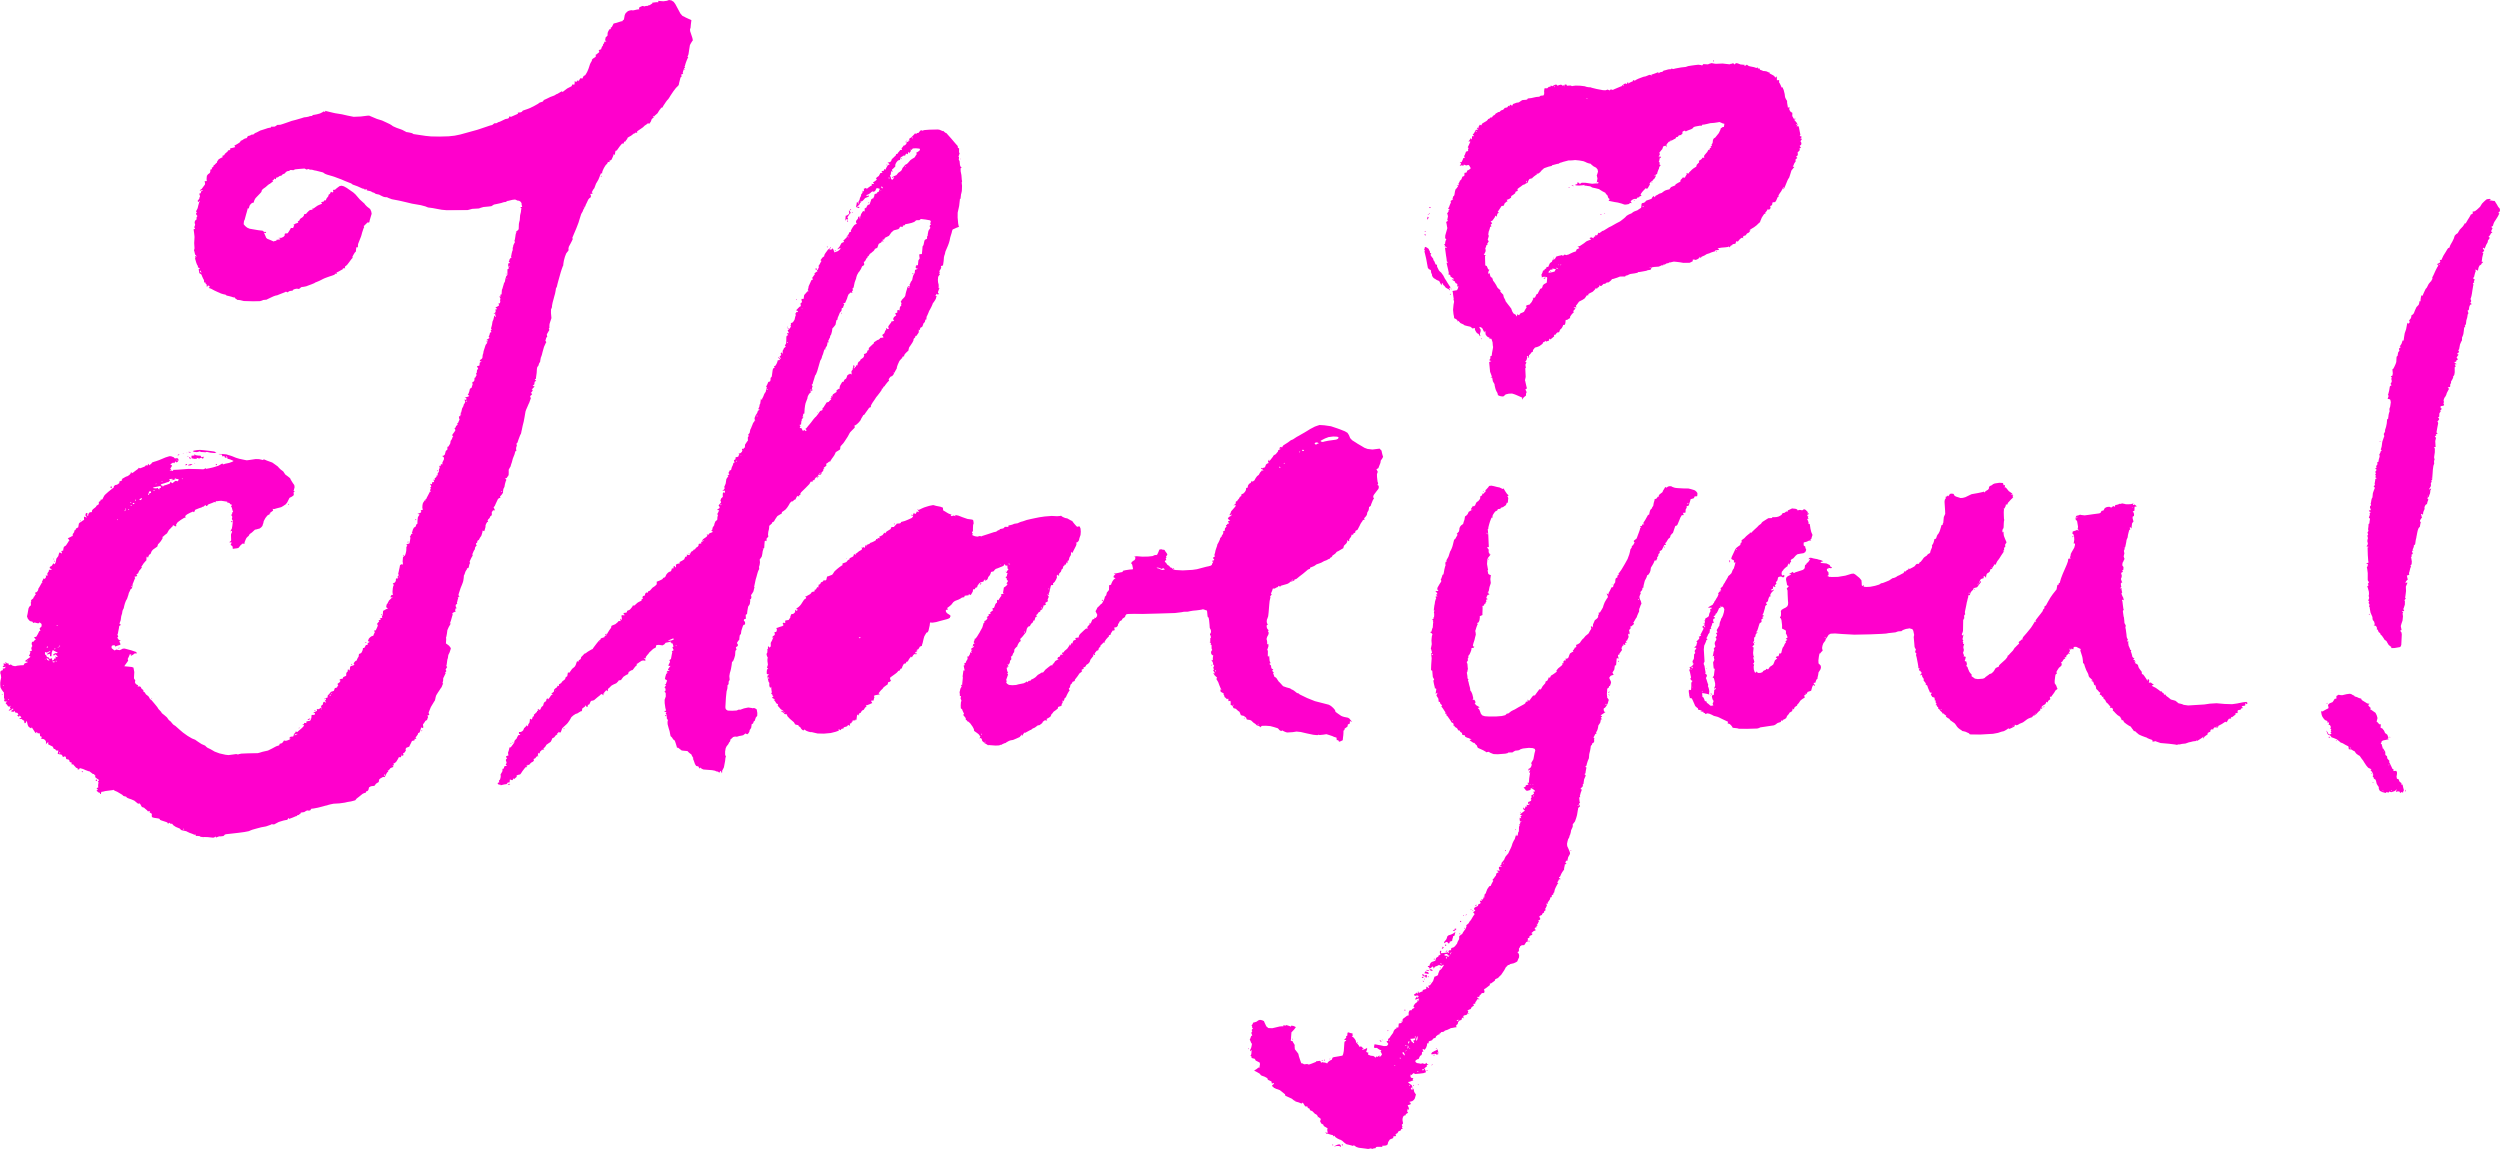 8 i love you texts png transparent onlygfx free download i love you 4g altavistaventures Choice Image